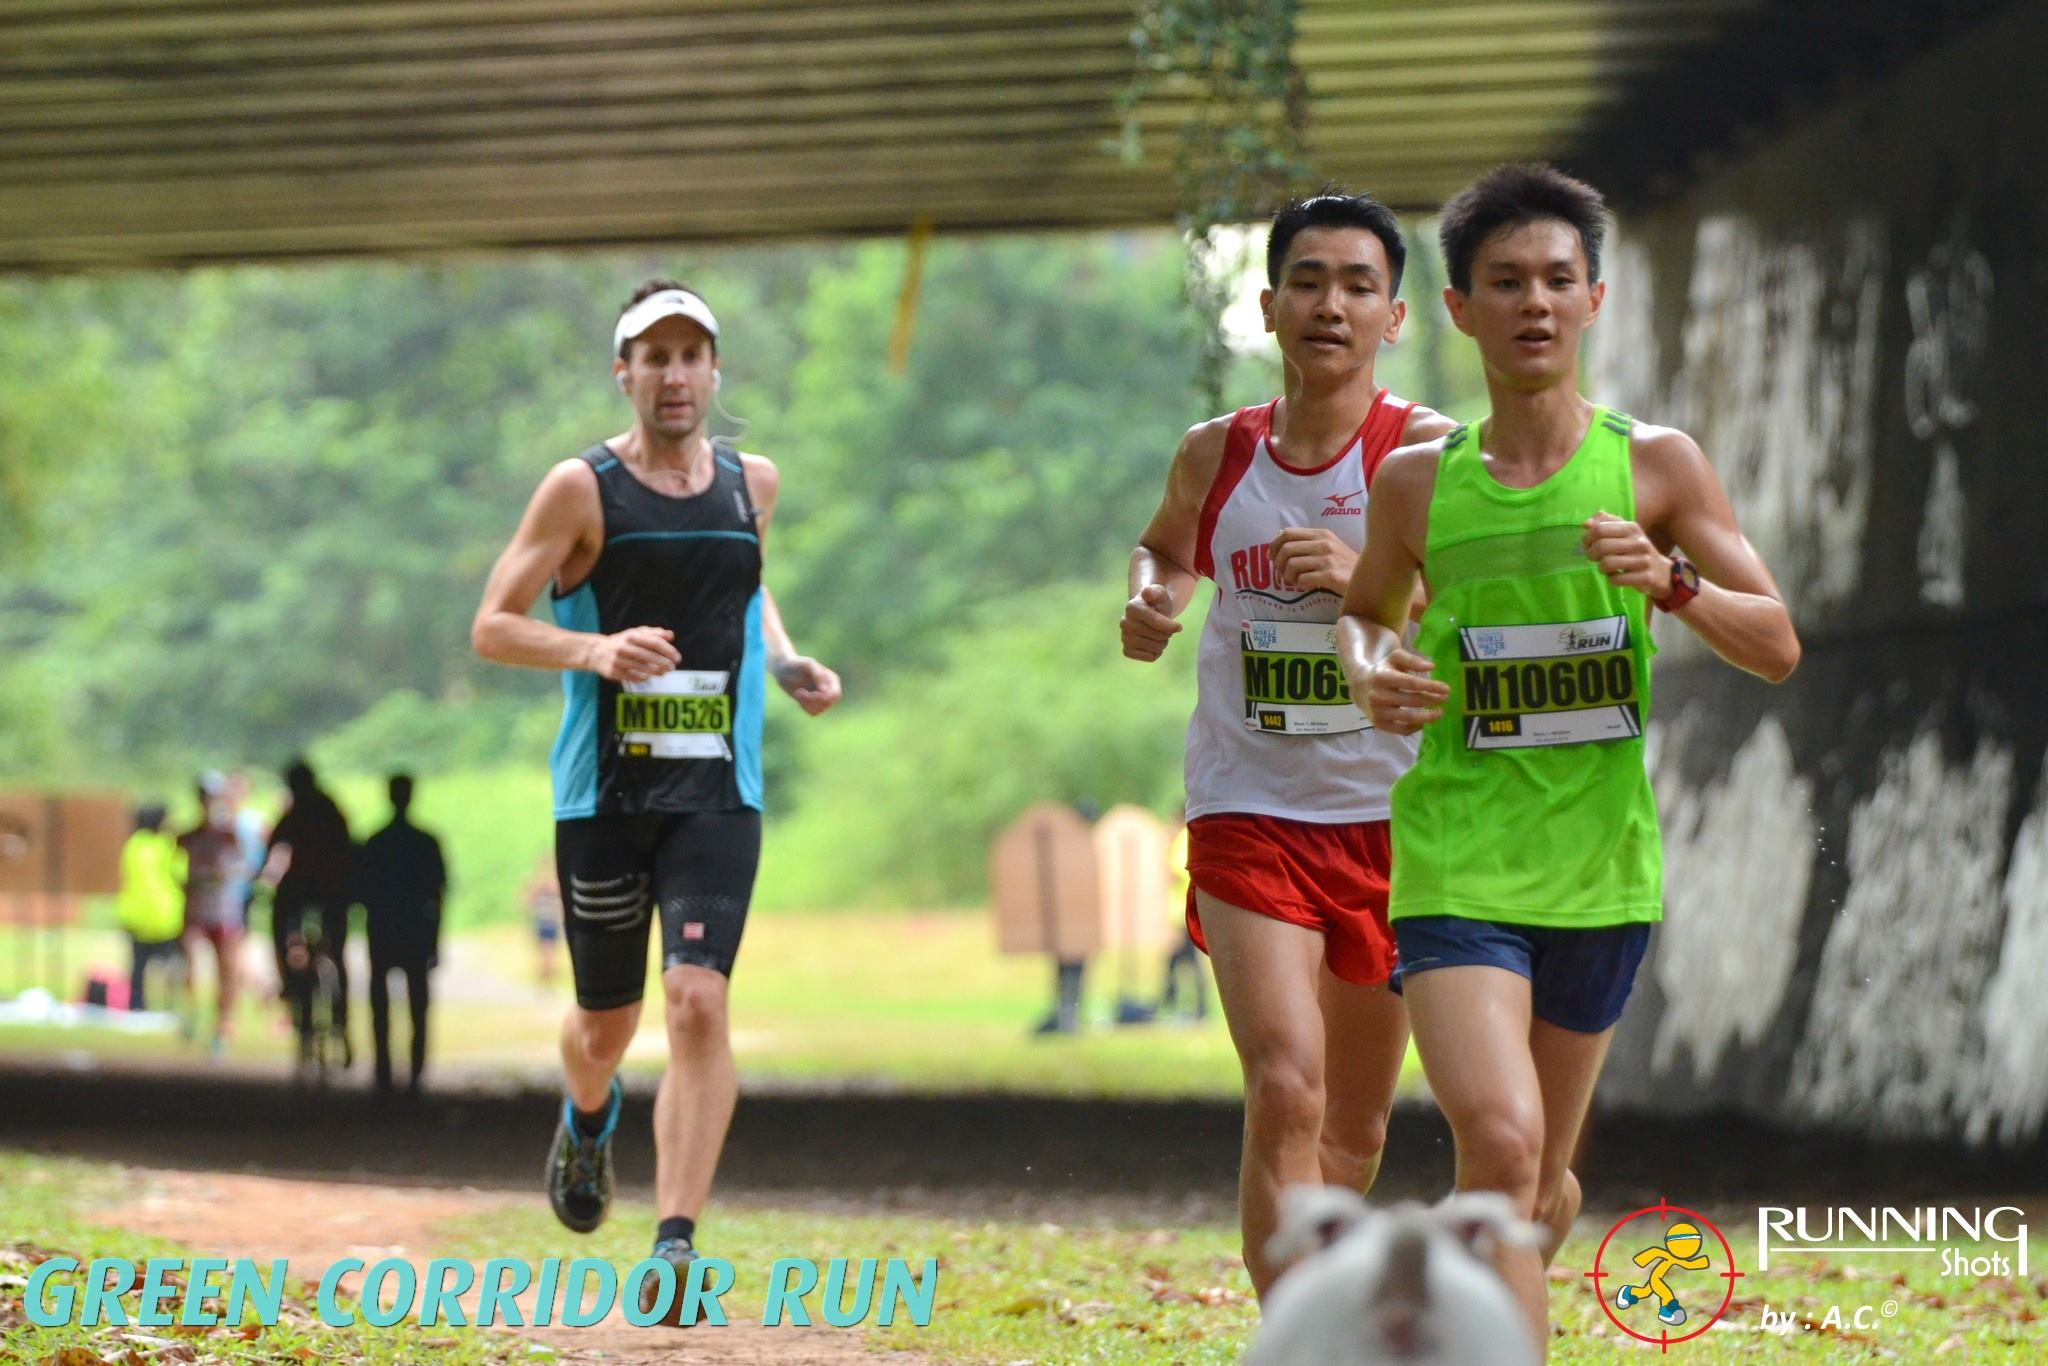 Just after the 7.5km hydration station. Credit to Running Shots.